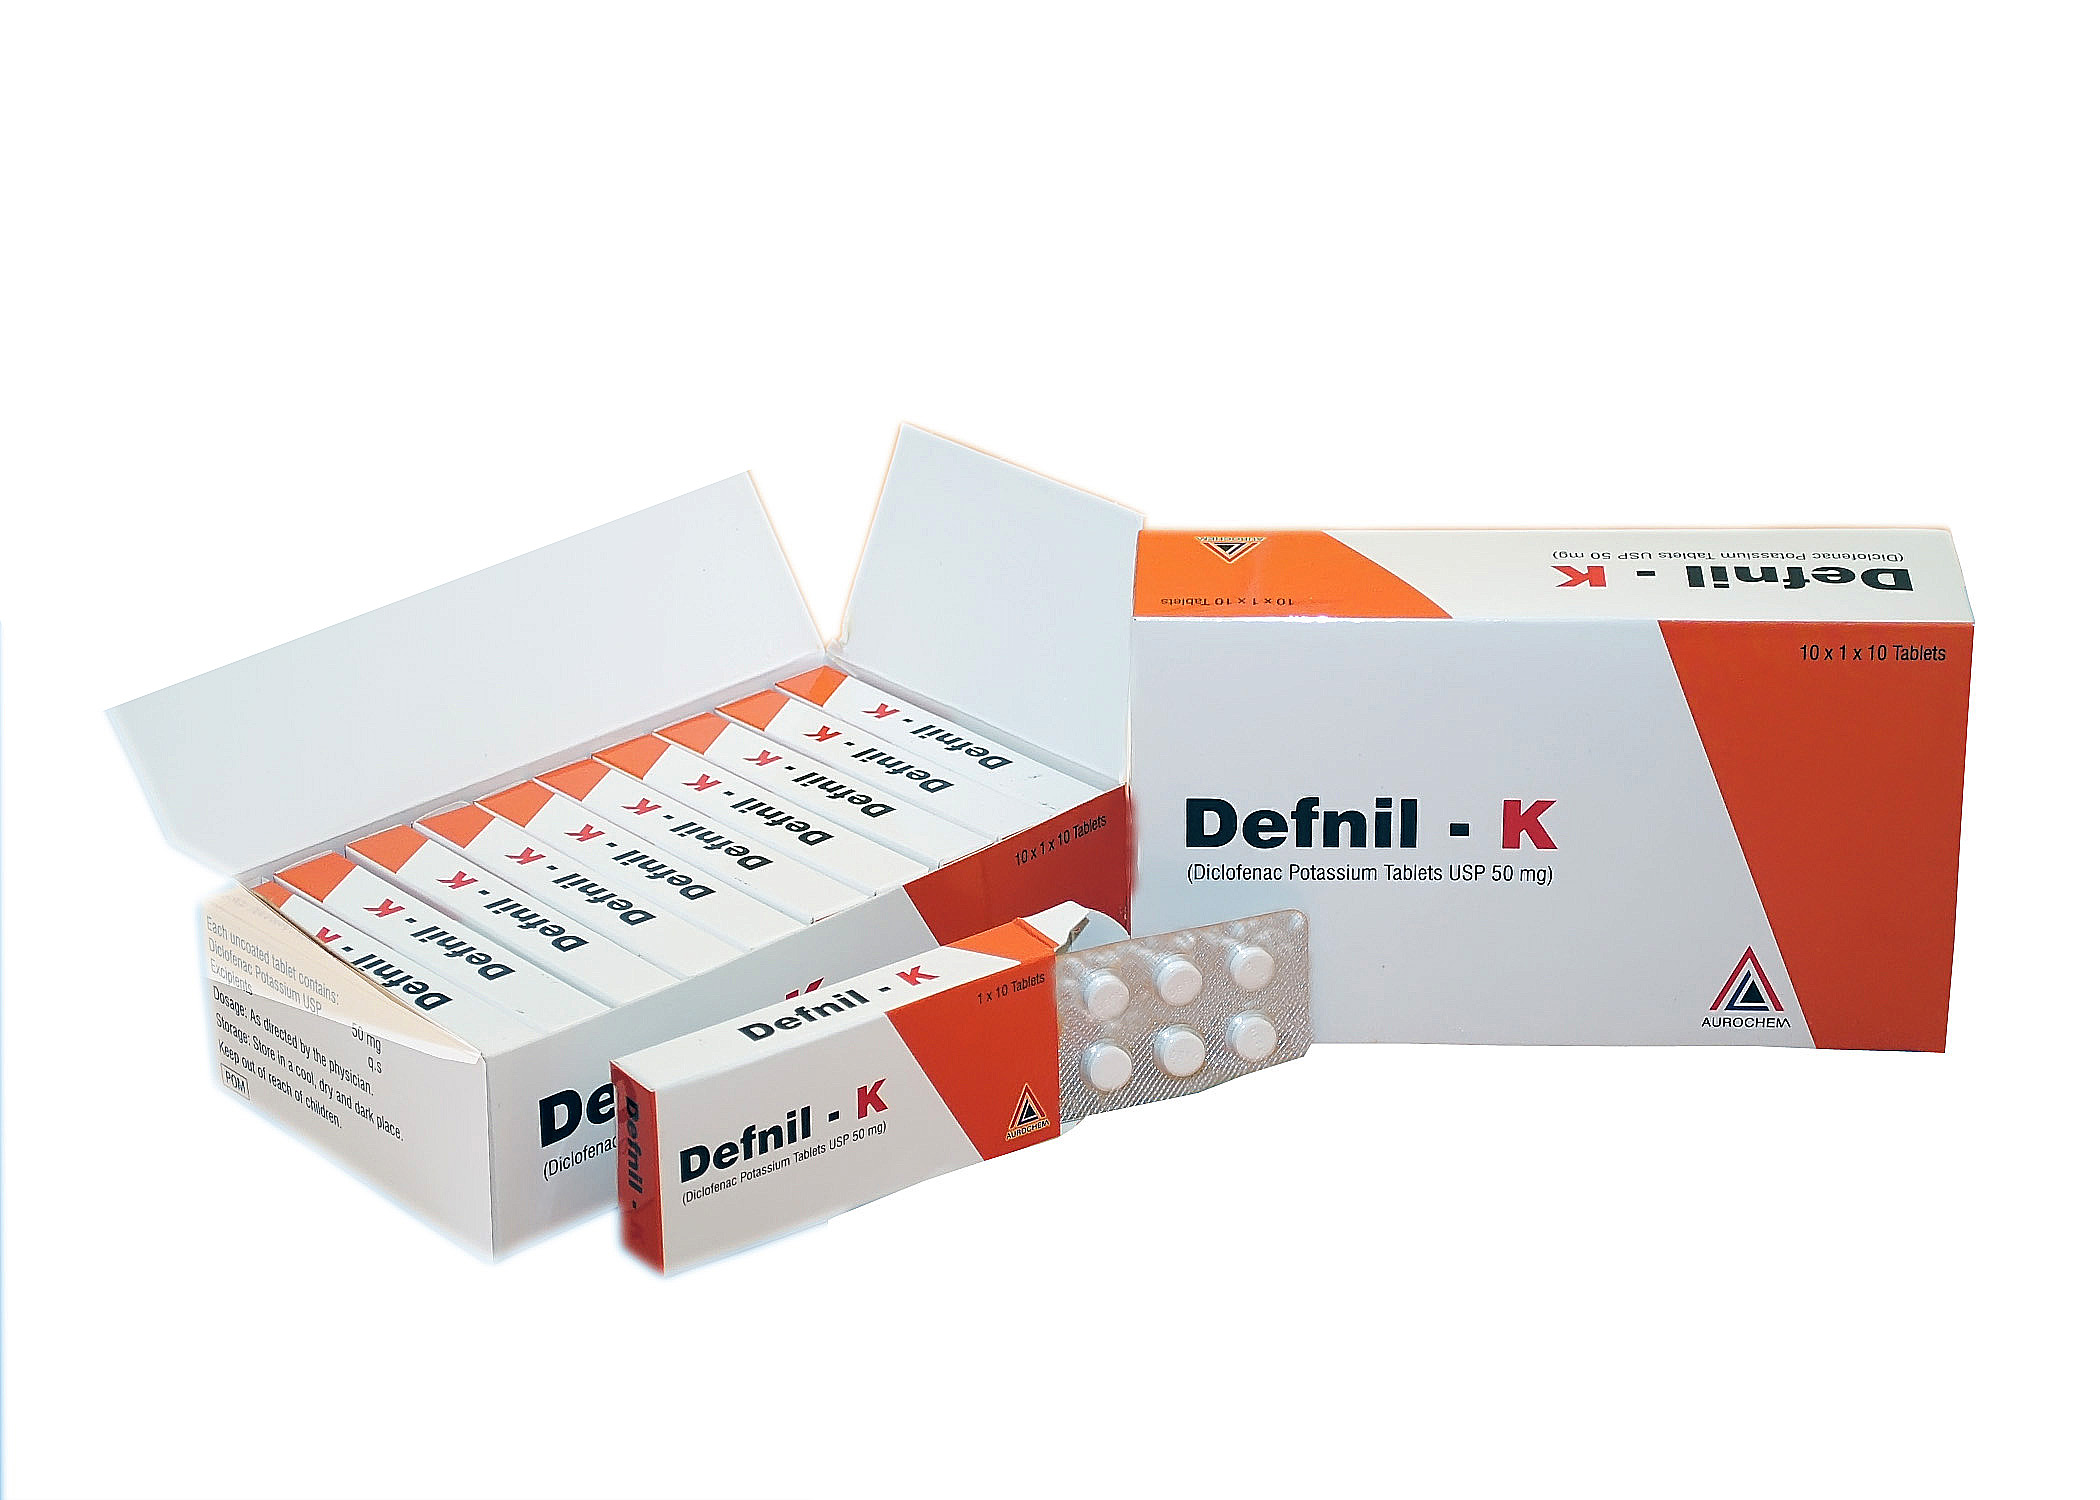 Diclofenac Potassium 50mg Tablets Dosage